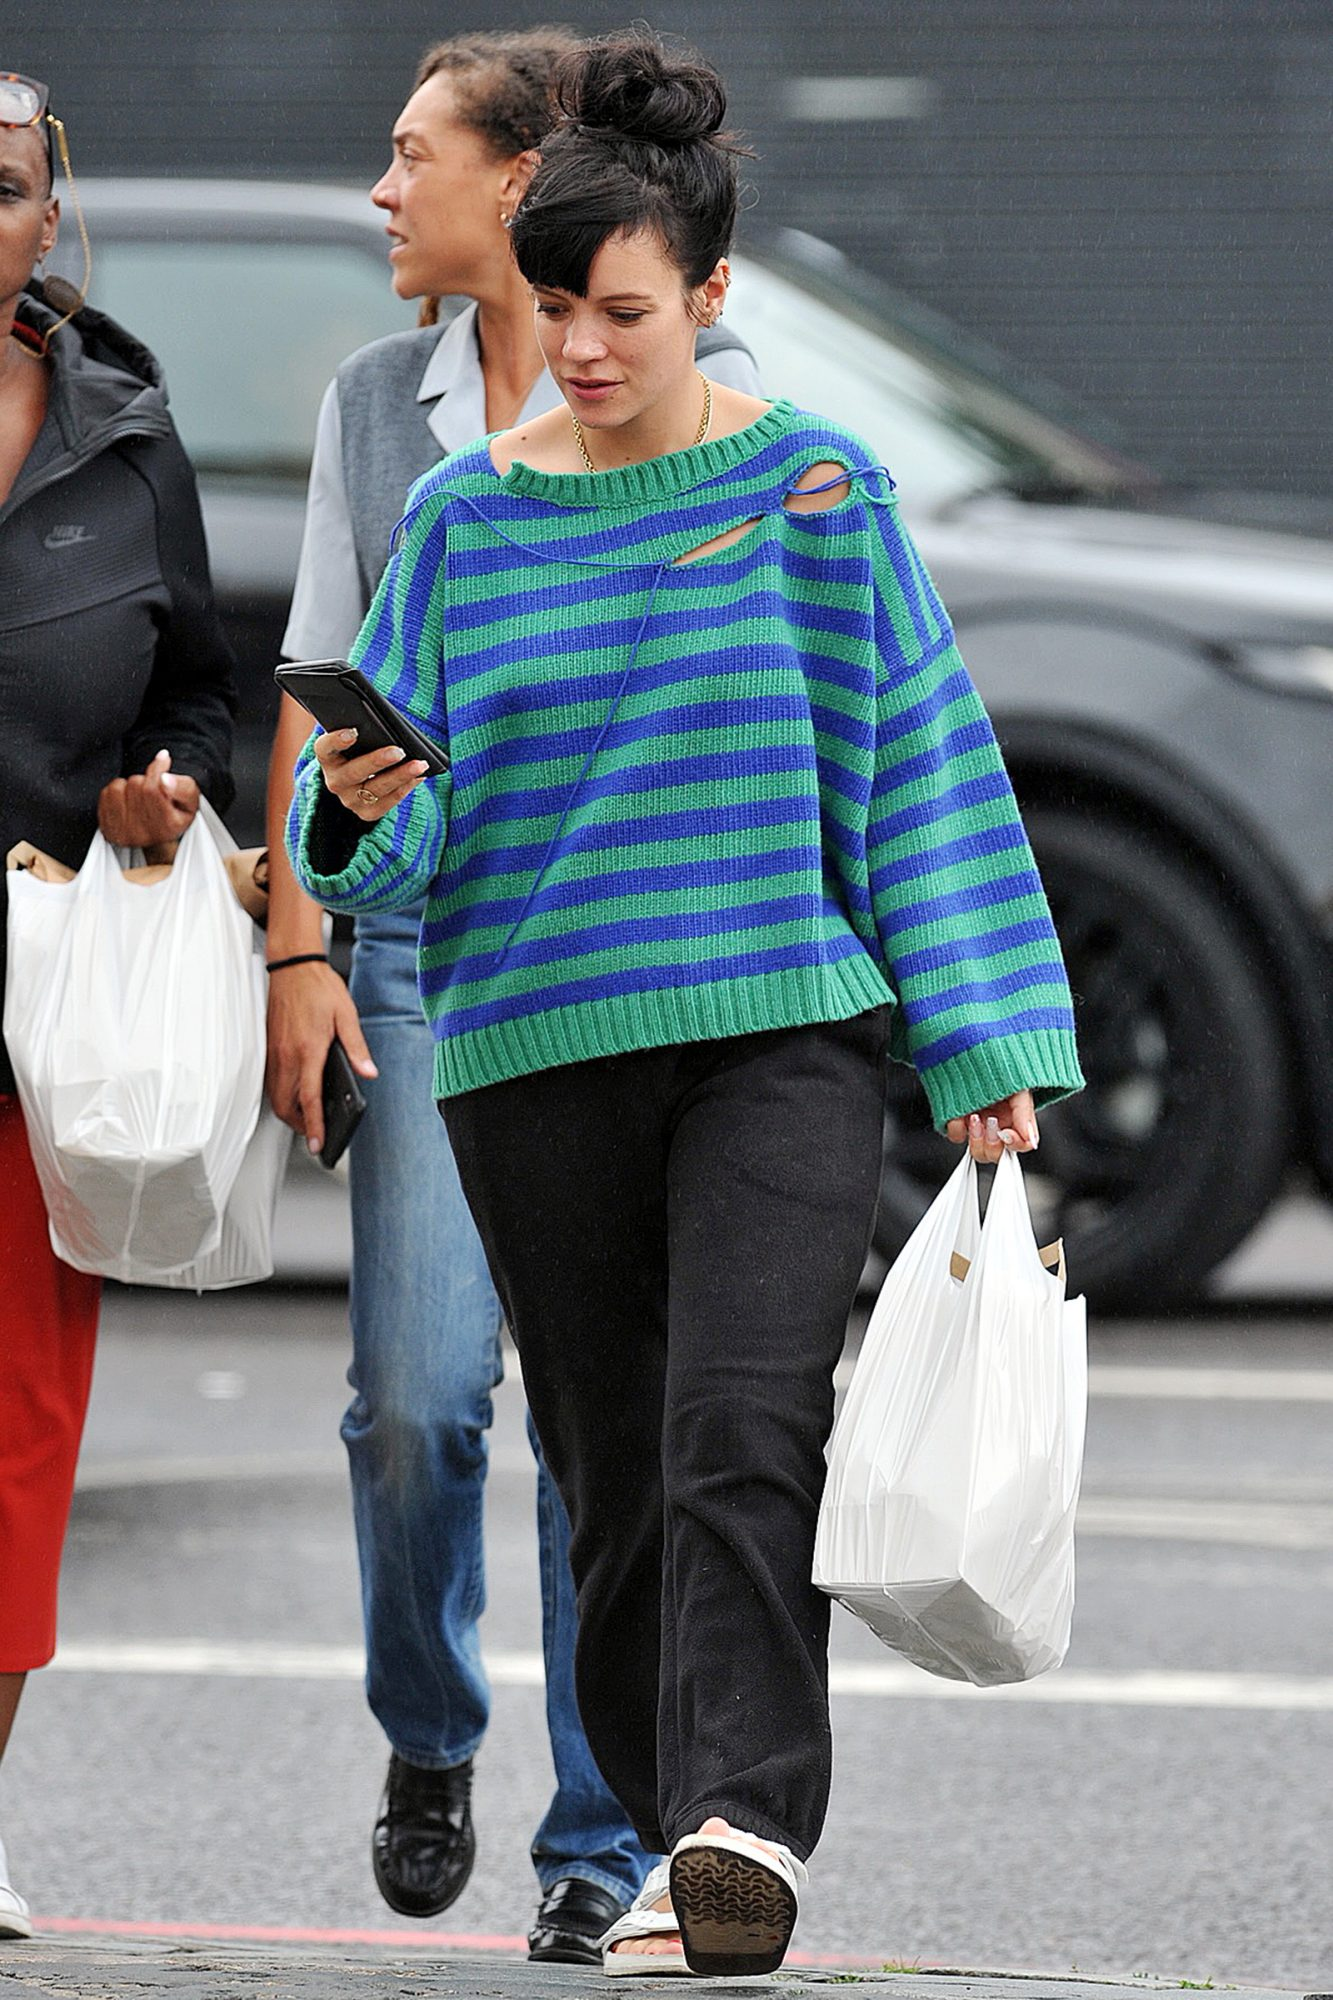 Lily Allen Flashes Bra While Hanging Out With Friend Miquita Oliver And Her Celebrity Chef Mum Andi